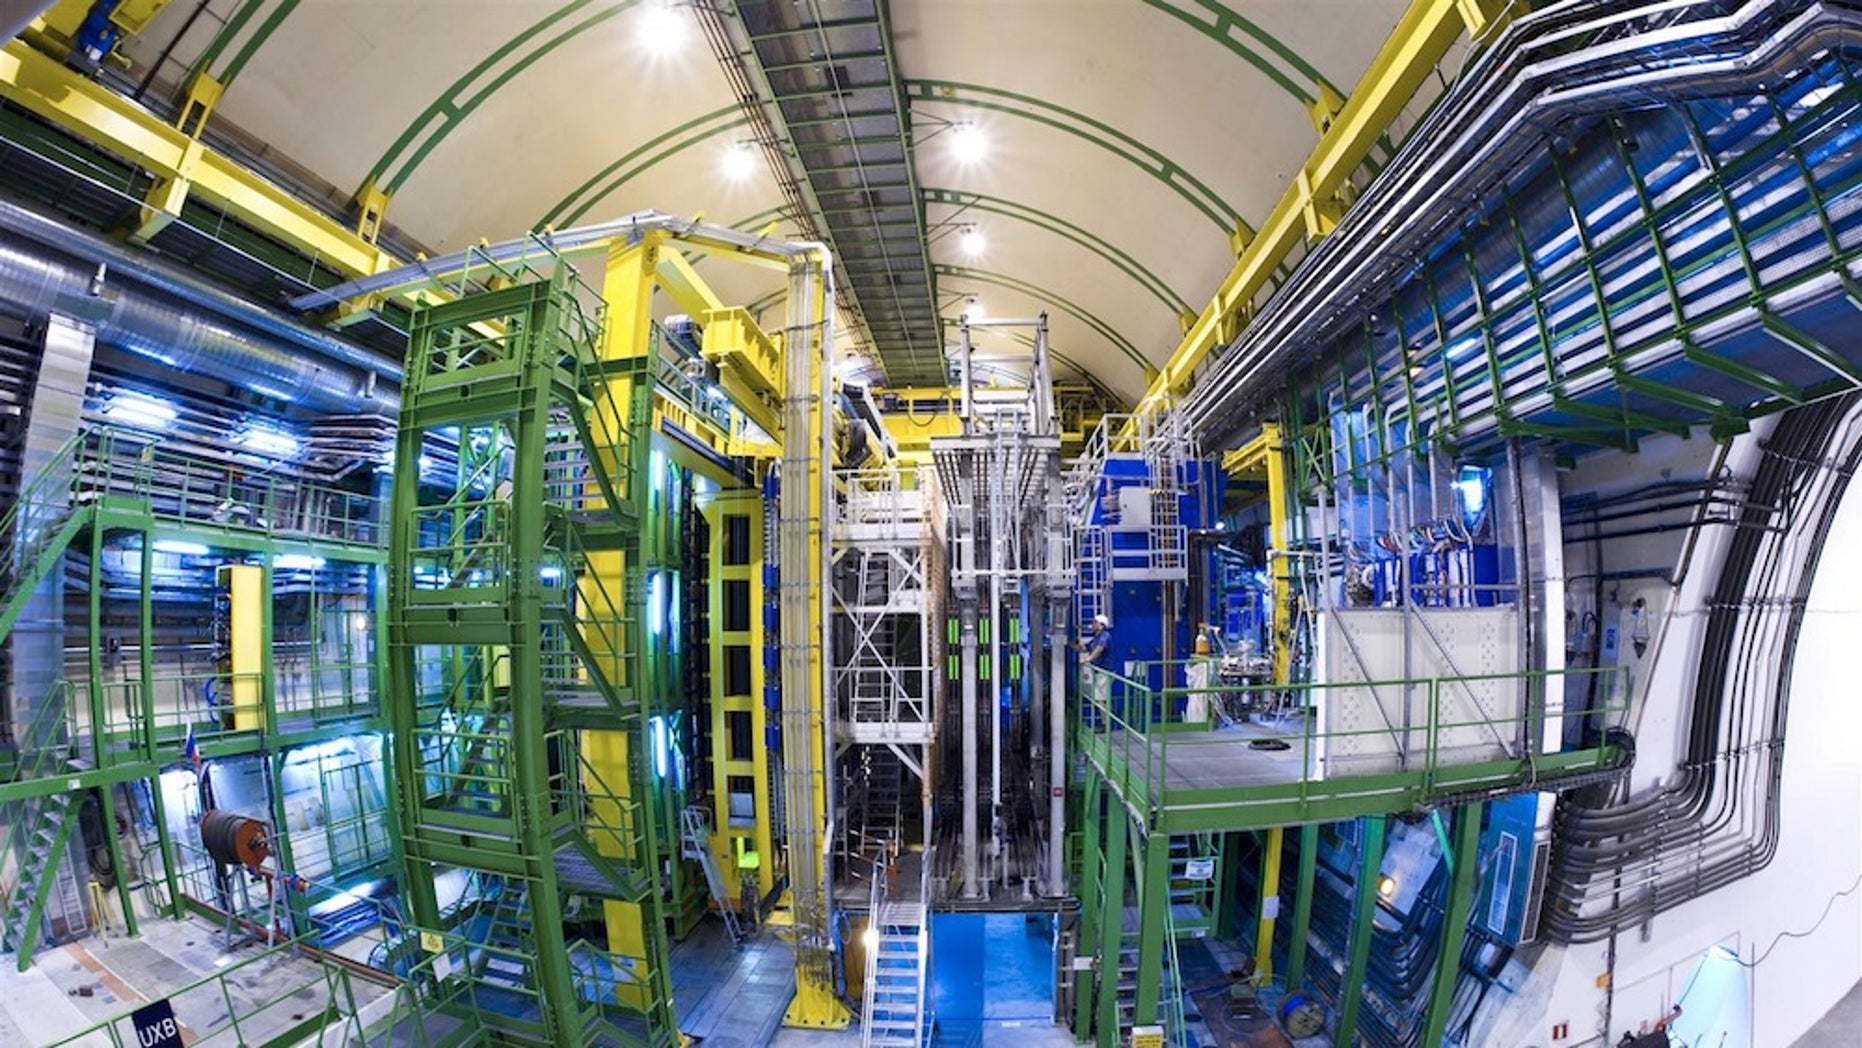 The LHCb detector at CERN.